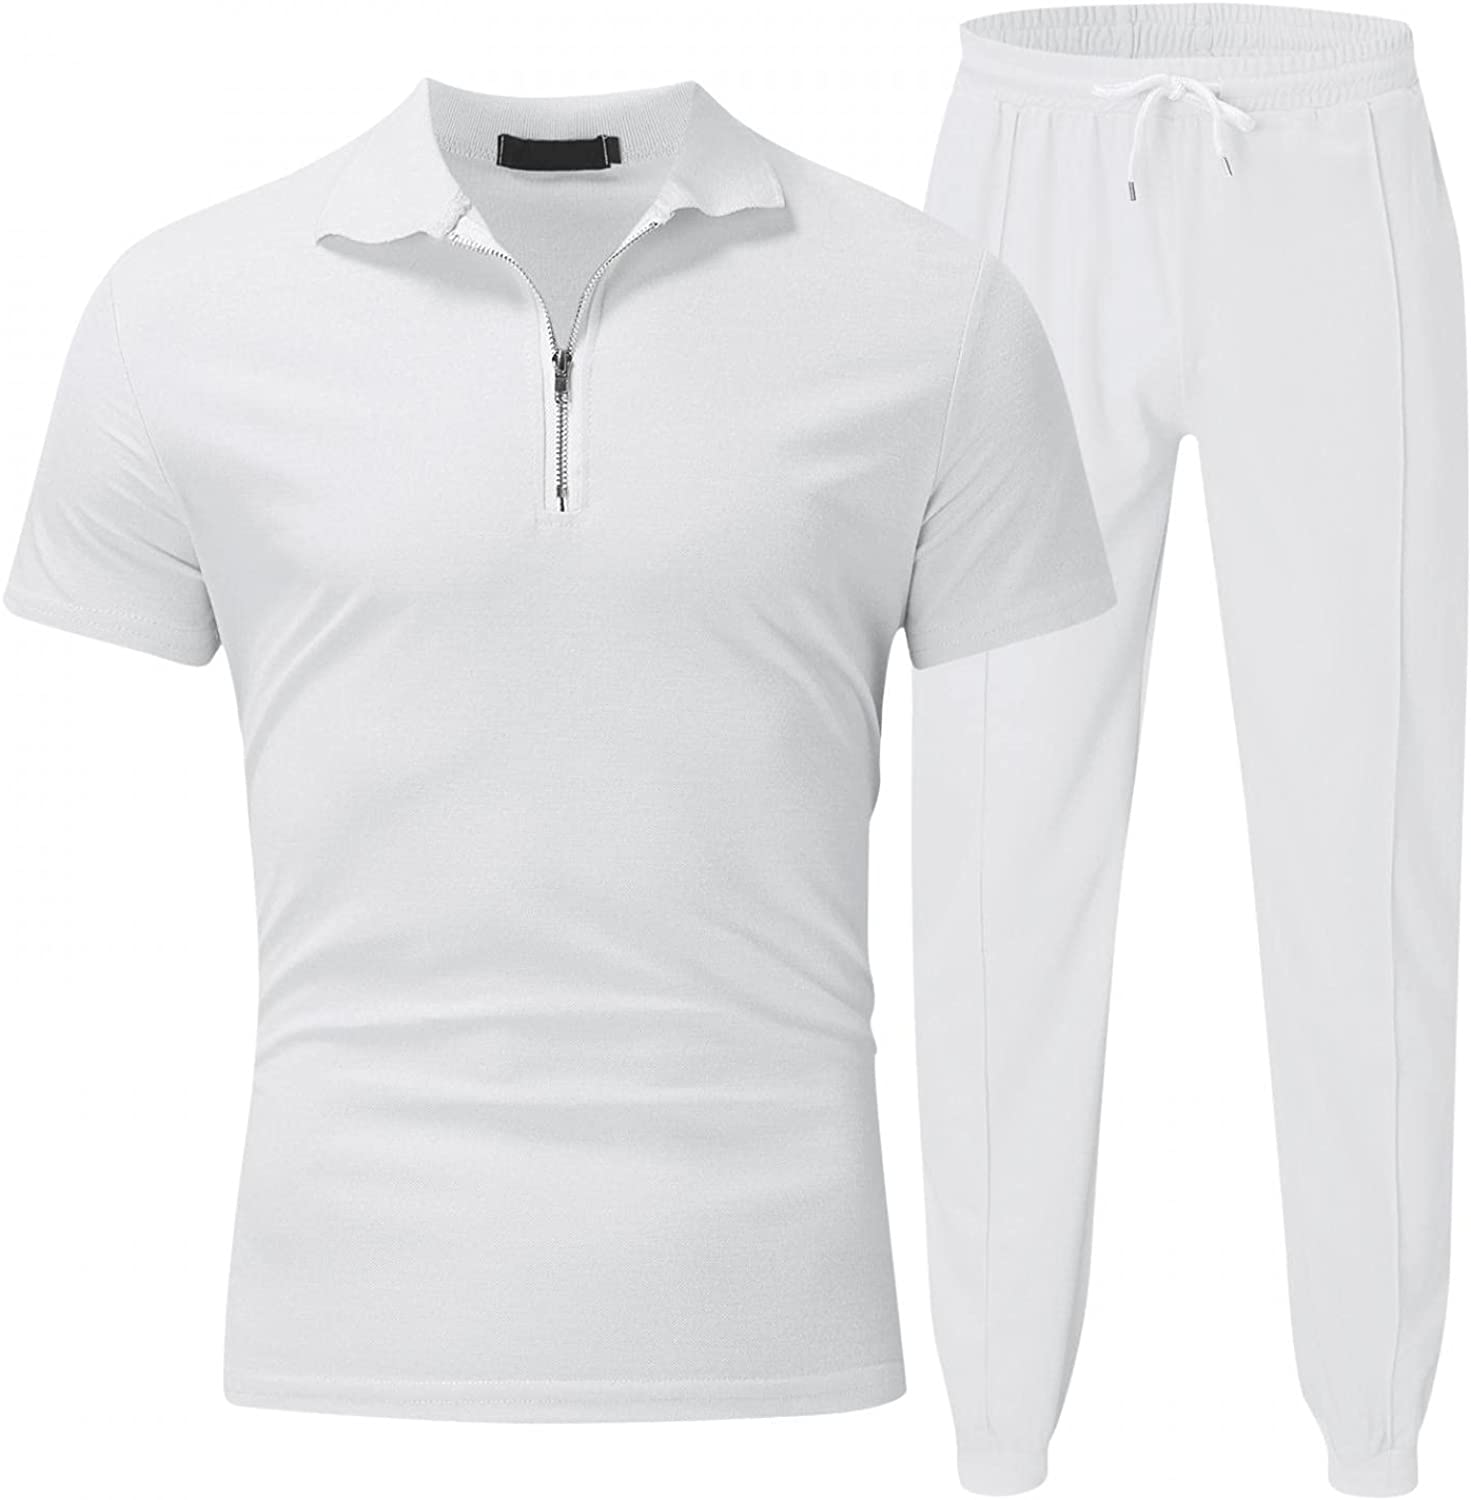 JSPOYOU Men's Tracksuits 2 Piece Outfit Zip Up Short Sleeve Top and pants Casual Slim Fit Athletic Jogging Tracksuit Sets